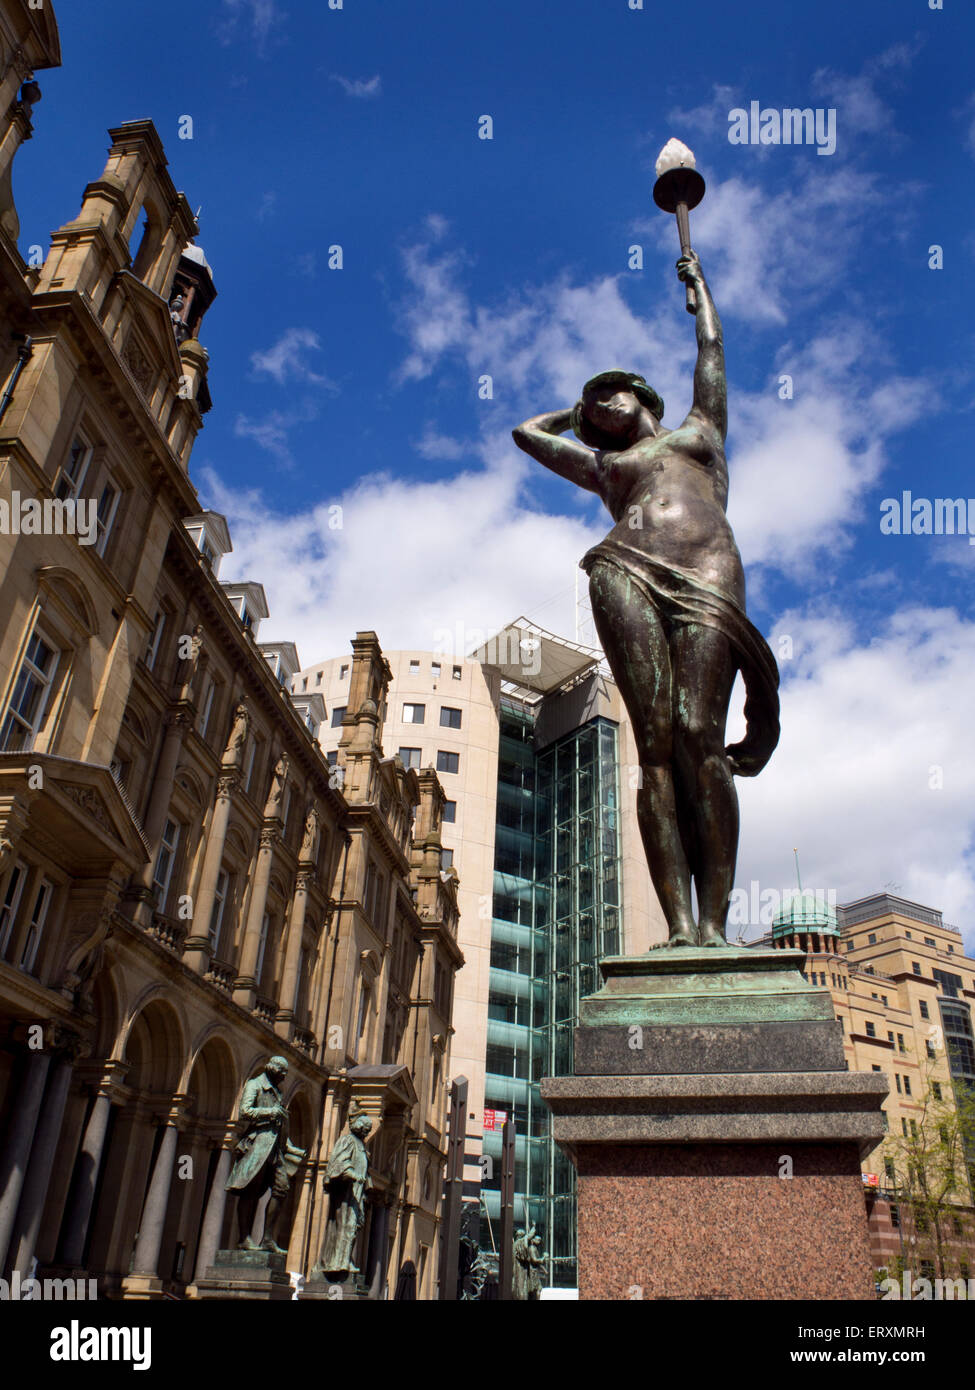 Even Statue in City Square Leeds West Yorkshire England - Stock Image